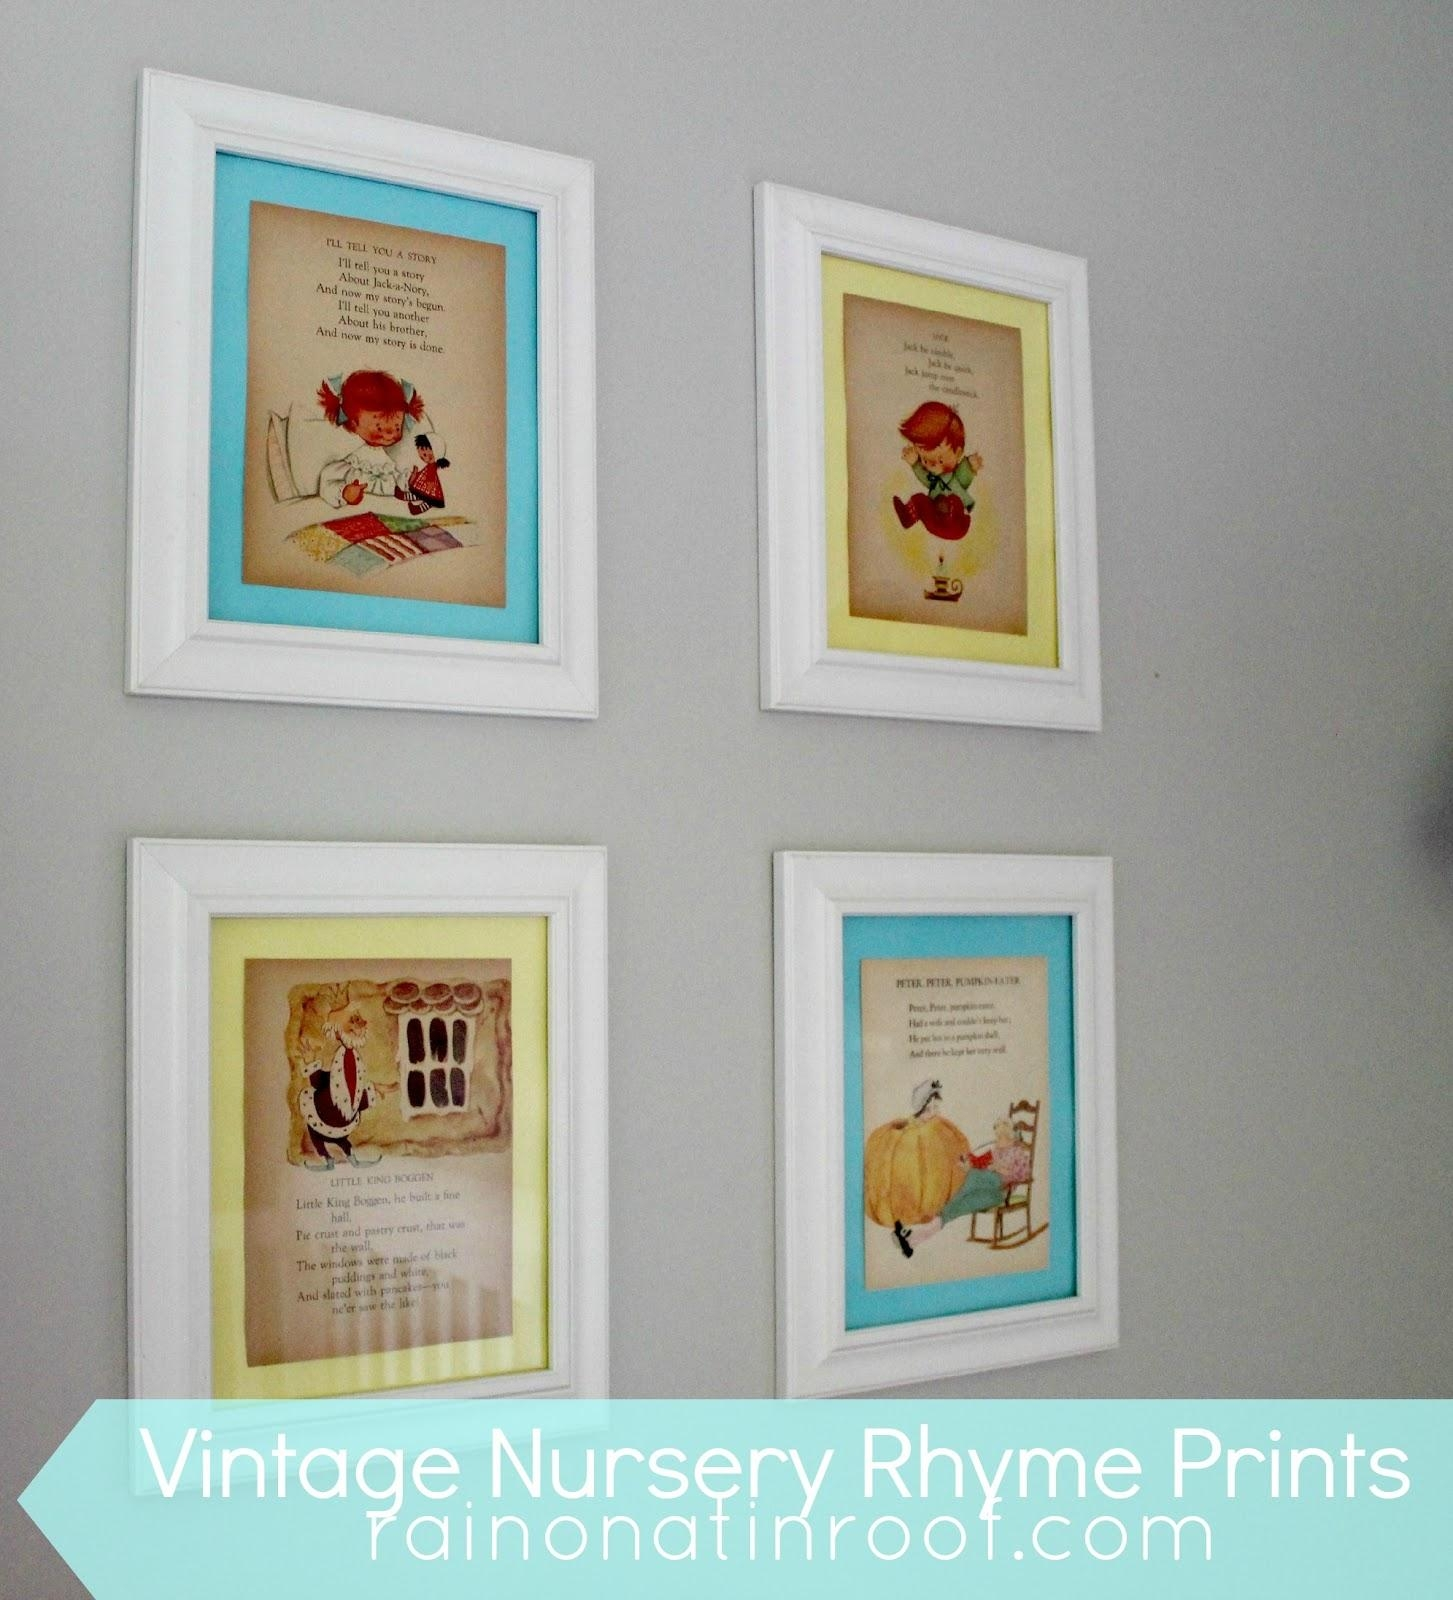 Diy Vintage Nursery Rhyme Prints: Simple & Cheap Regarding Nursery Framed Wall Art (View 8 of 20)